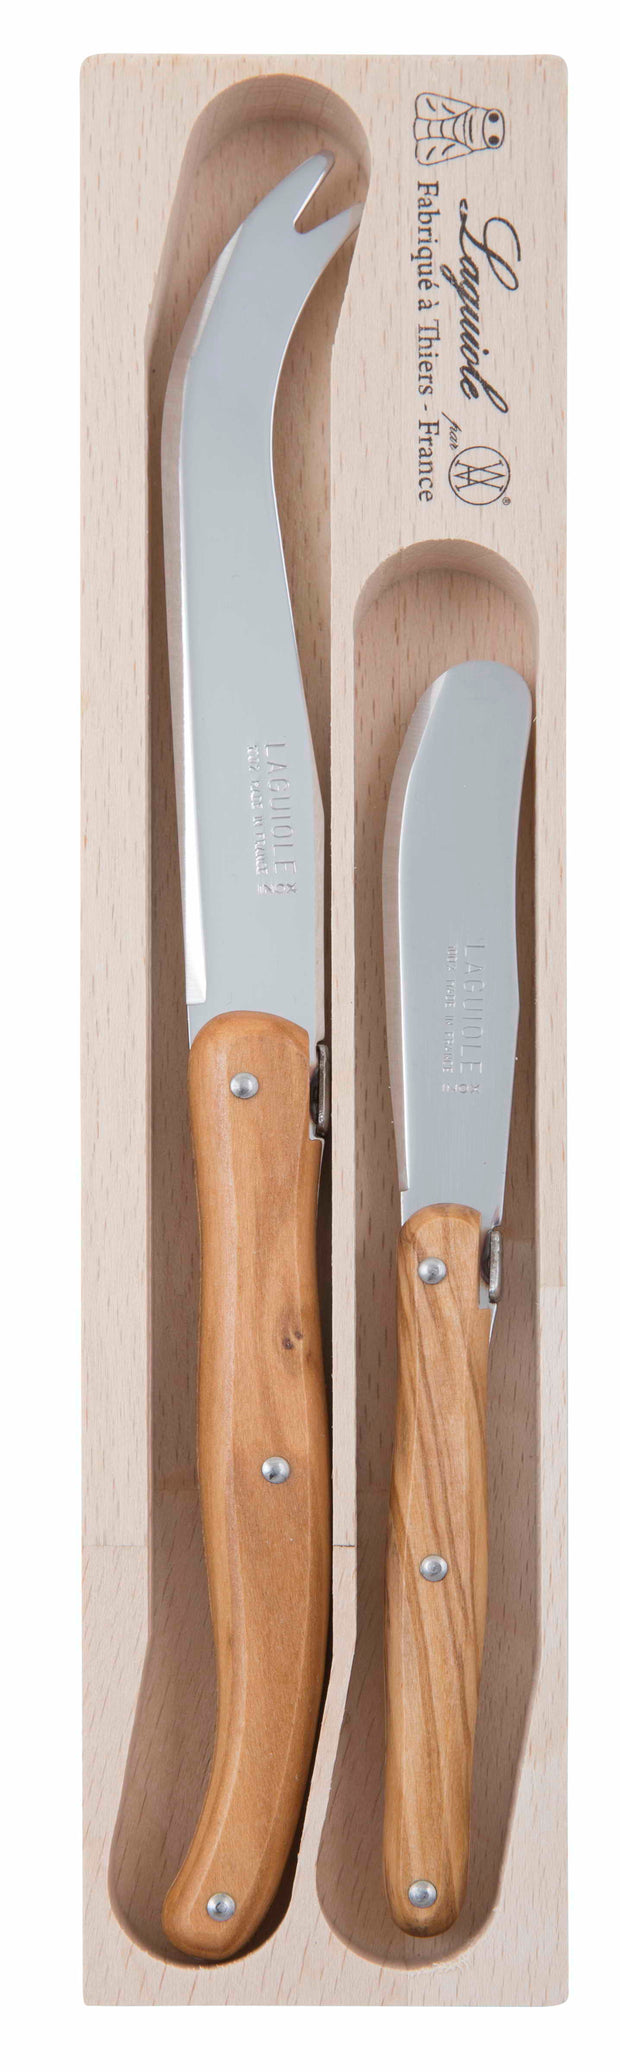 André Verdier - Debutant Cheese Knife Wood (2pcs)